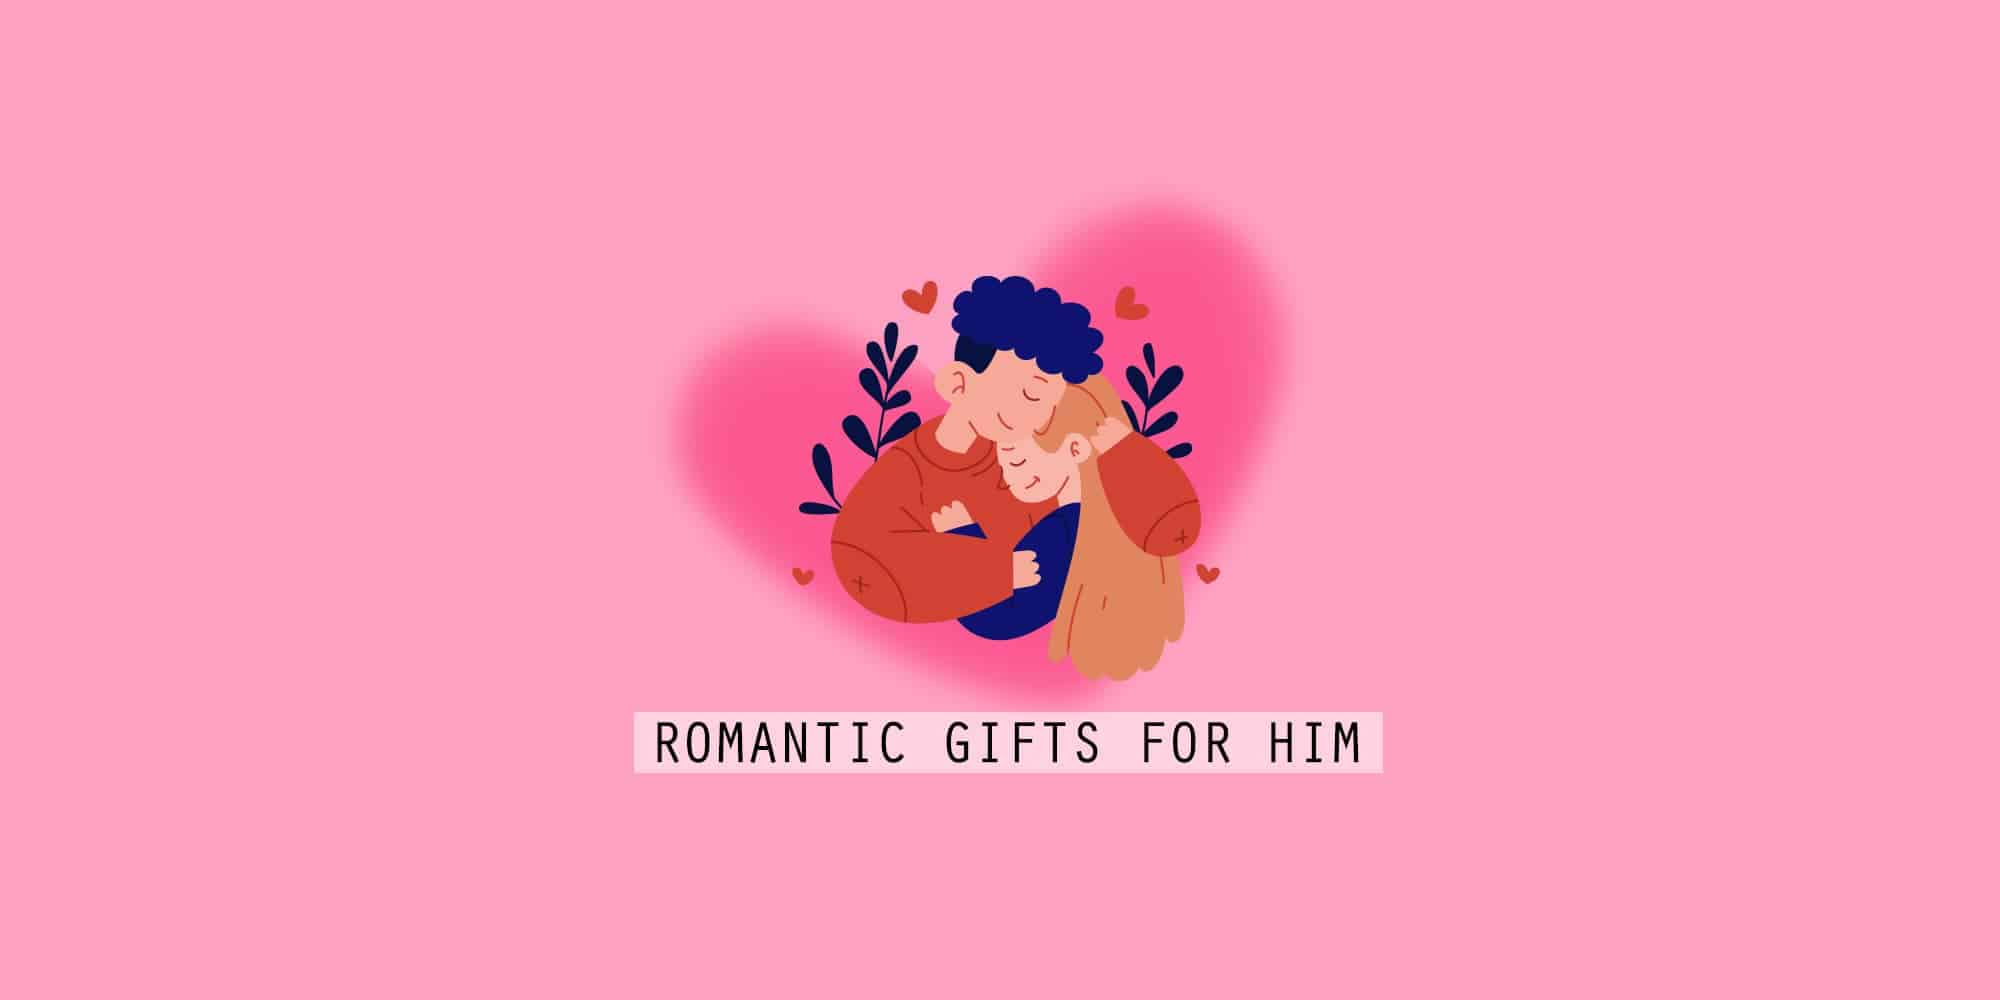 Best Romantic Gifts For Him: 35 Ideas to Melt His Heart (2021)